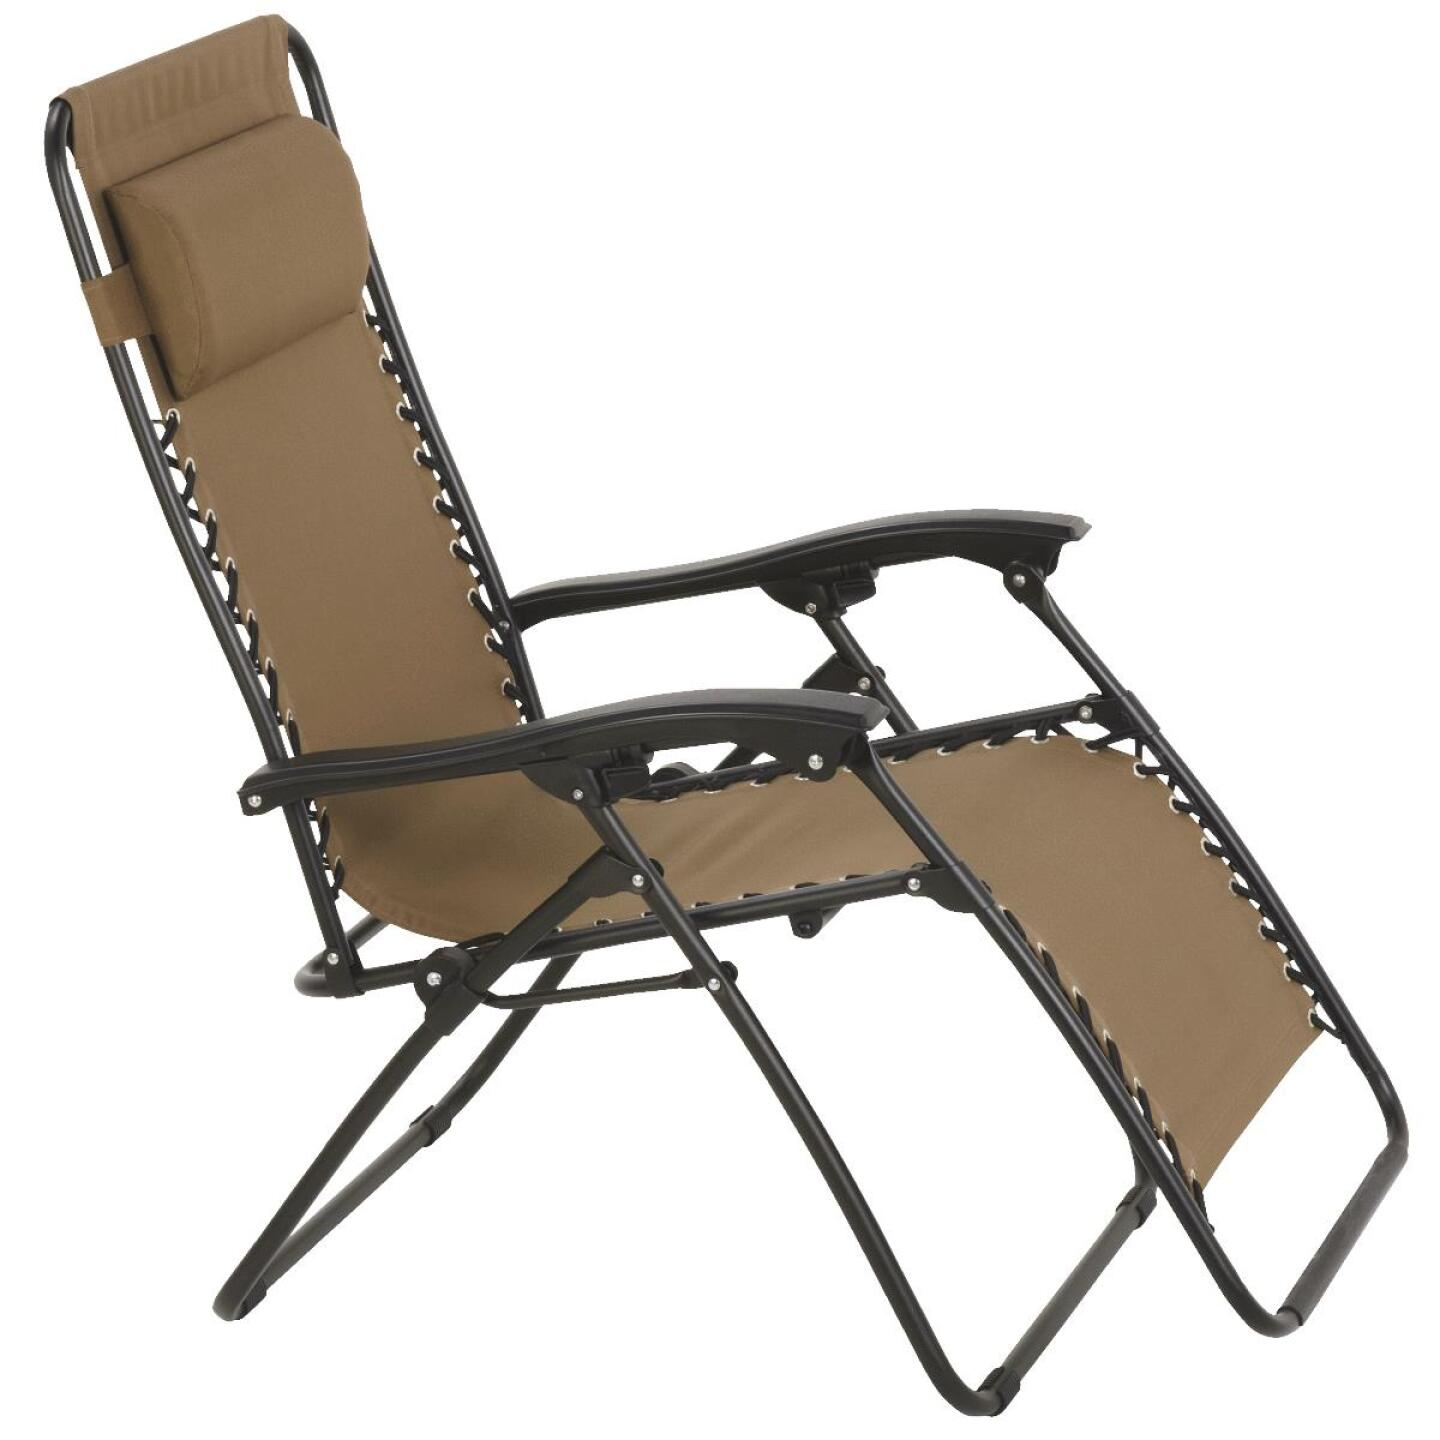 Outdoor Expressions Zero Gravity Relaxer Tan Convertible Lounge Chair Image 1